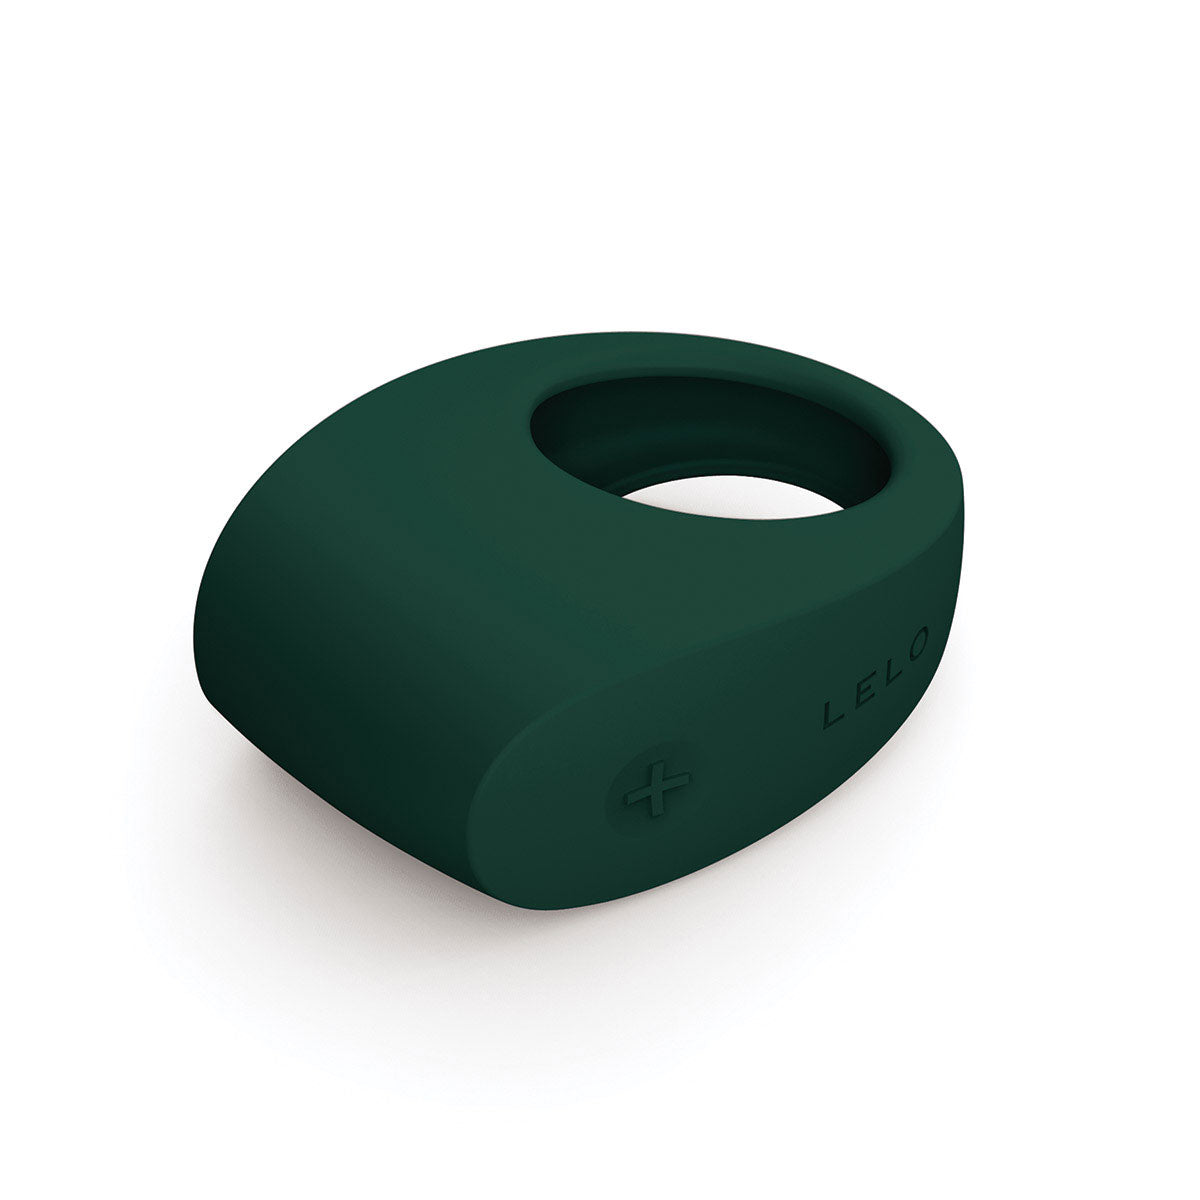 LELO Tor 2 Ring - Green [A00059]